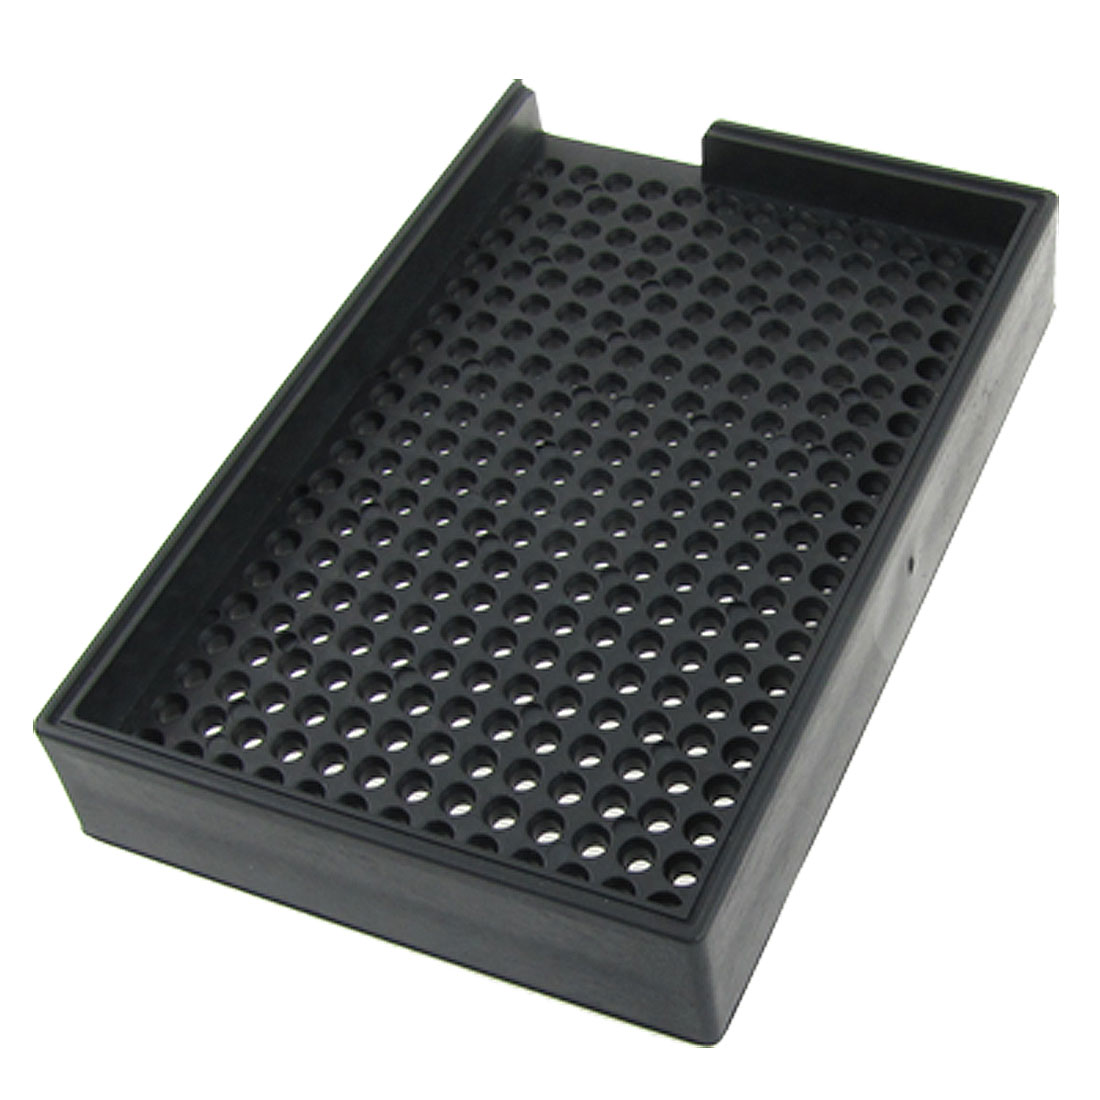 Replacement 2.5mm-3.0mm Antistatic Plastic Screw Tray Holder Black